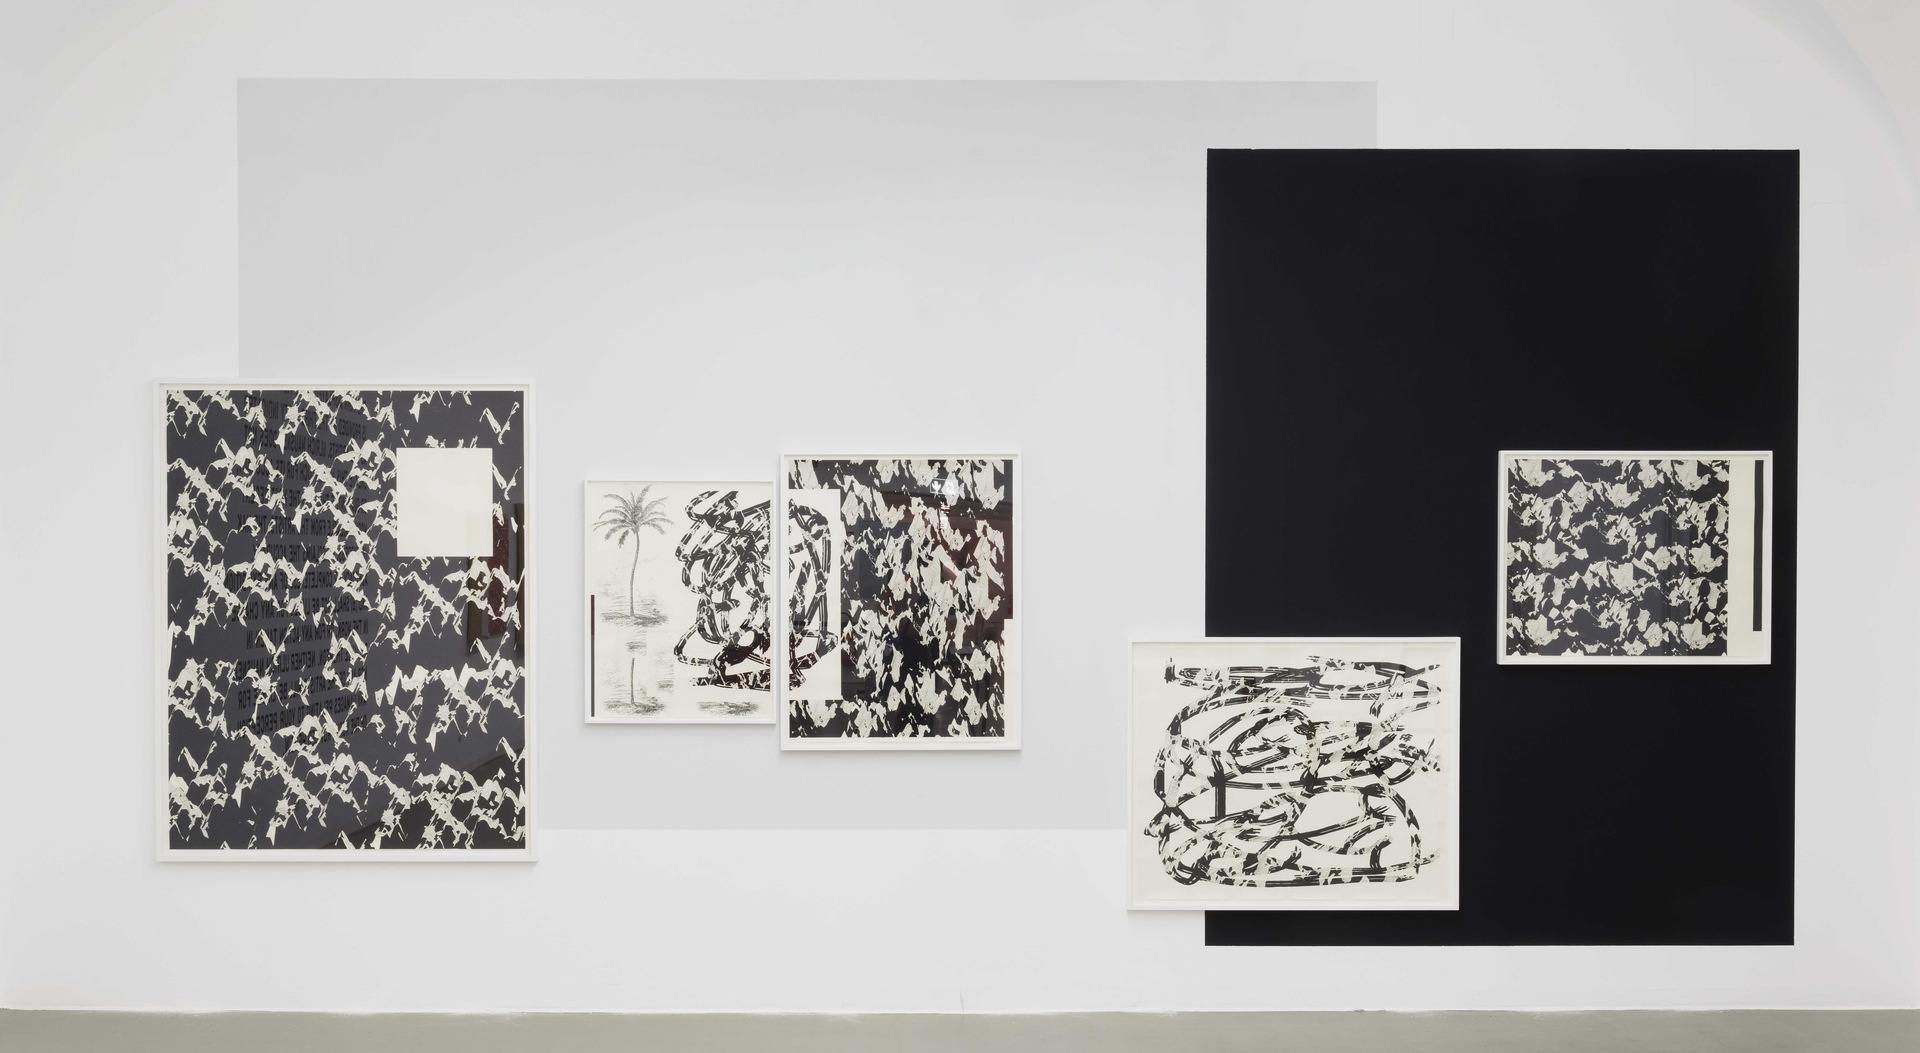 7 Peter Jellitsch, Data Drawings (29+ö+ç+¦33), 2015